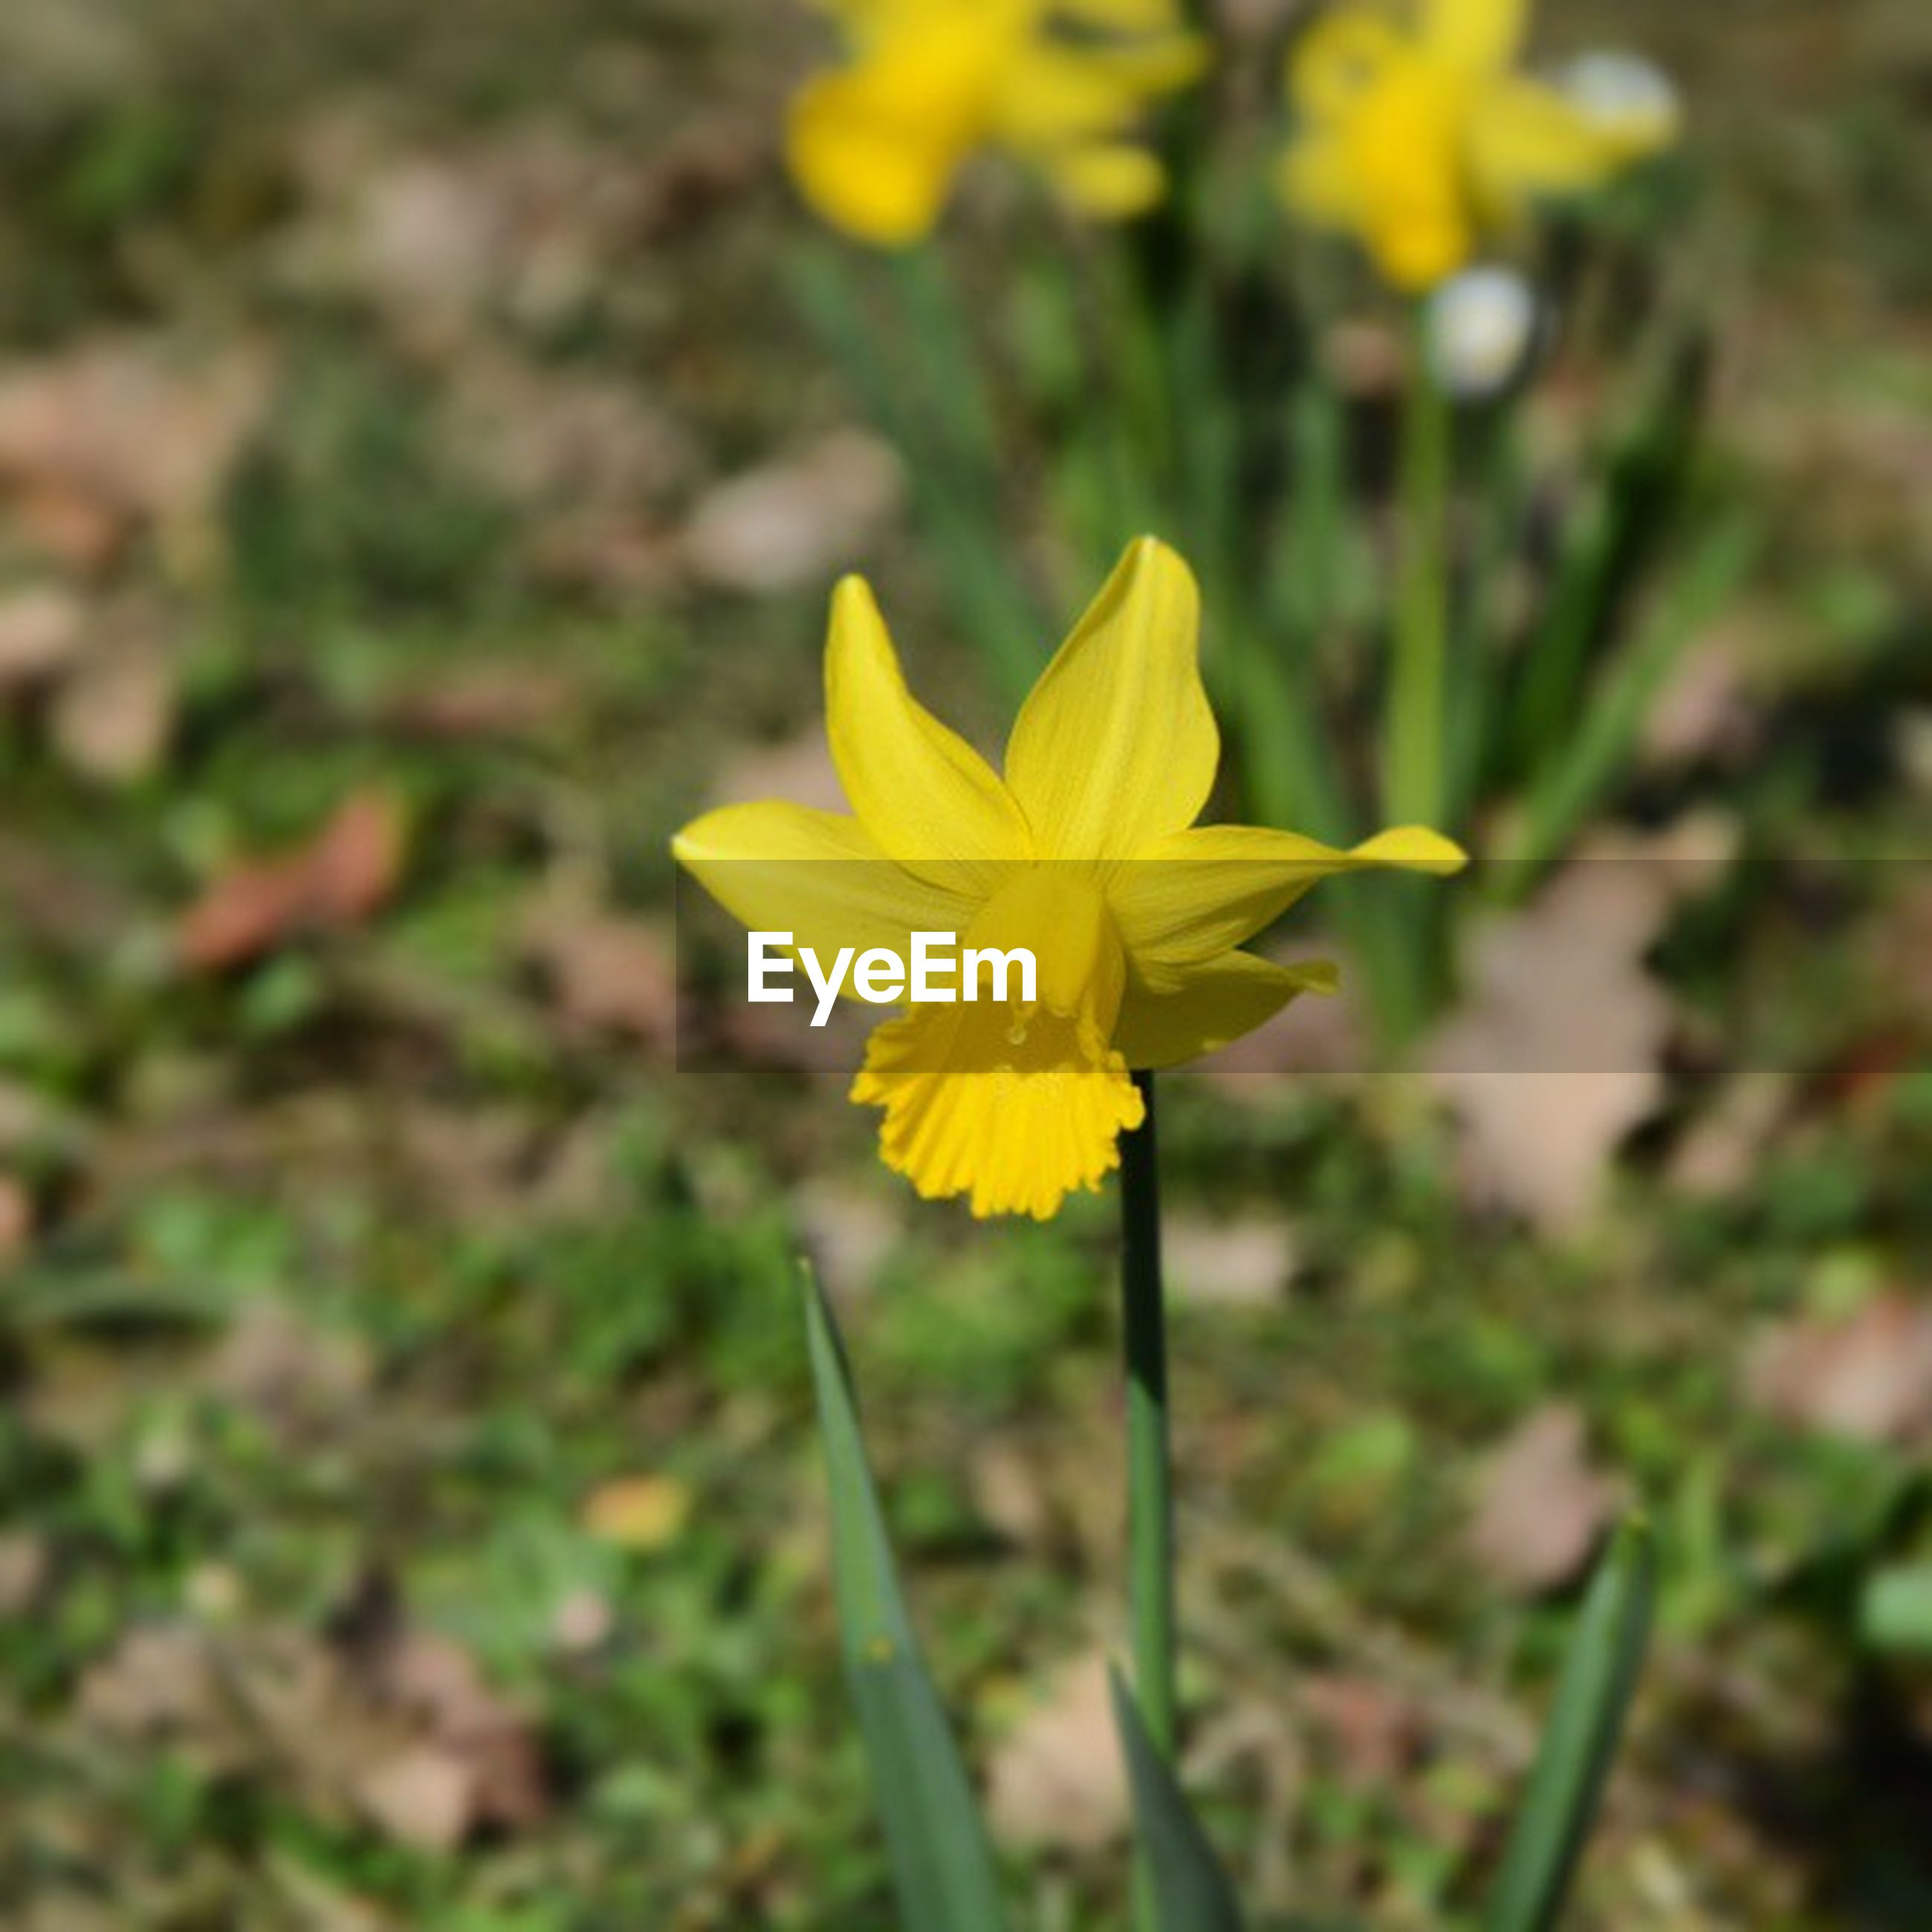 flower, yellow, petal, fragility, flower head, freshness, growth, beauty in nature, focus on foreground, blooming, close-up, plant, nature, single flower, in bloom, stem, pollen, outdoors, field, day